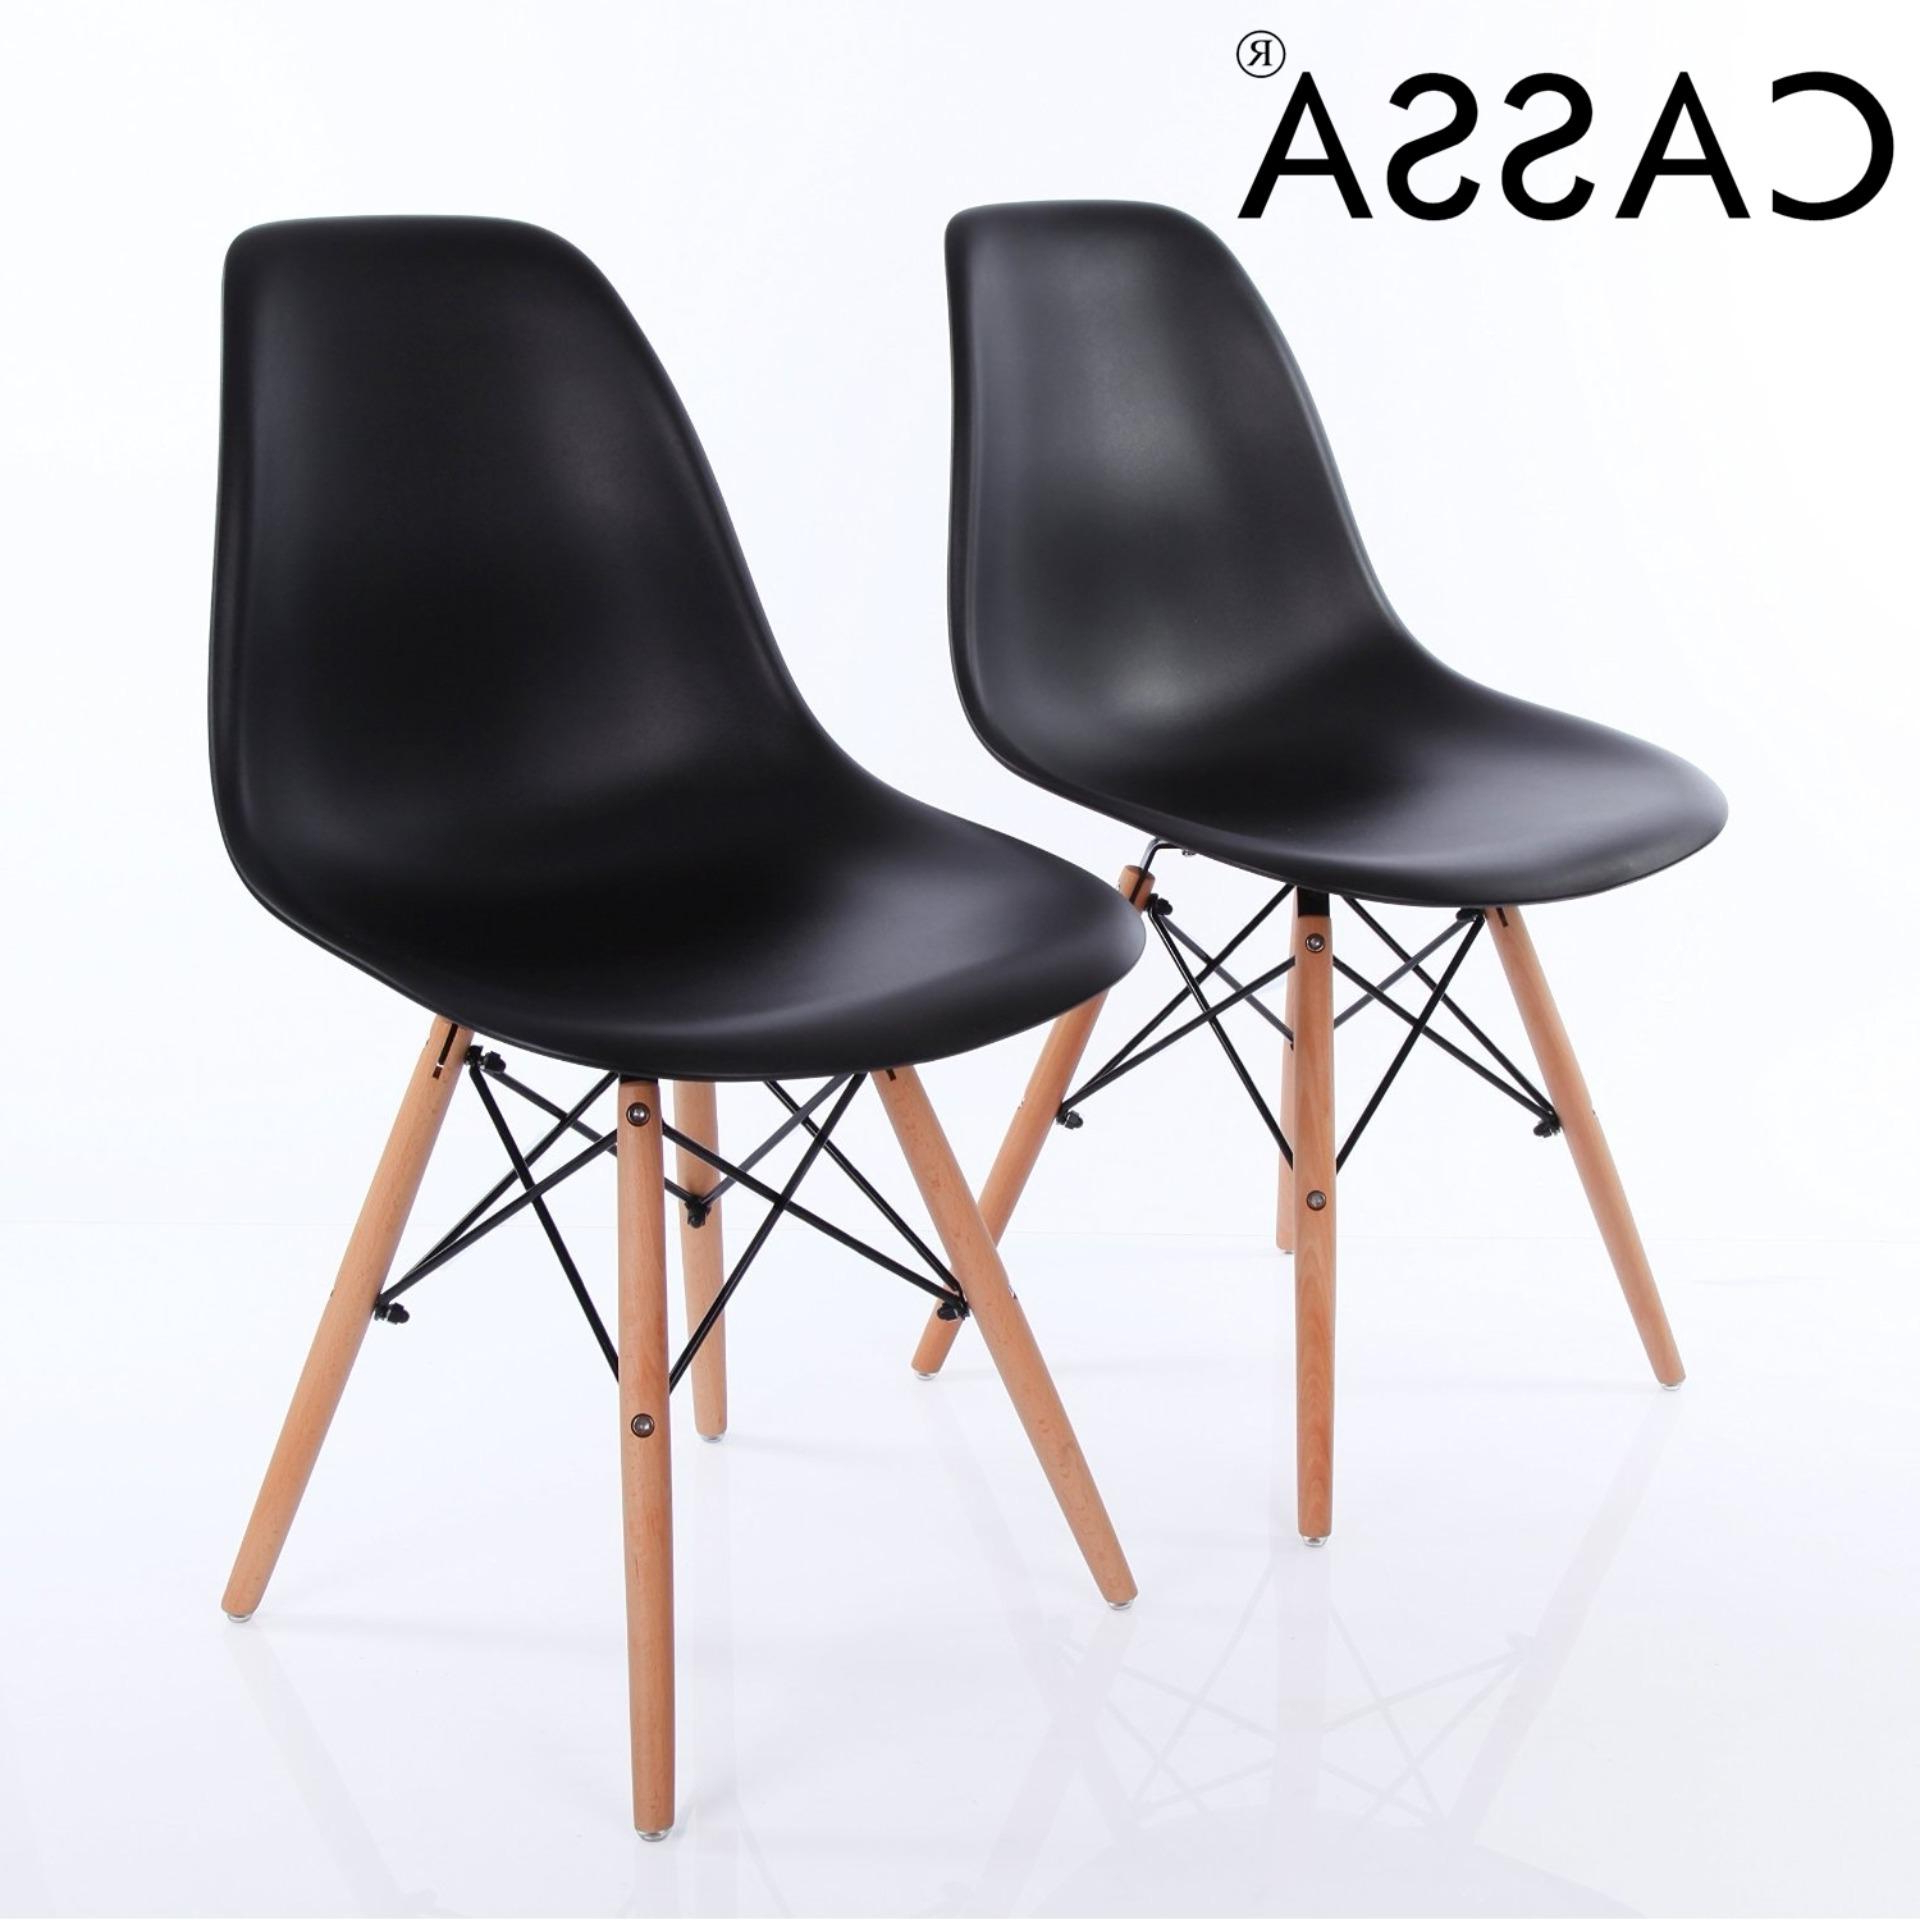 Chill Swivel Chairs With Metal Base Intended For Newest Home Home Office Chairs – Buy Home Home Office Chairs At Best Price (View 12 of 20)